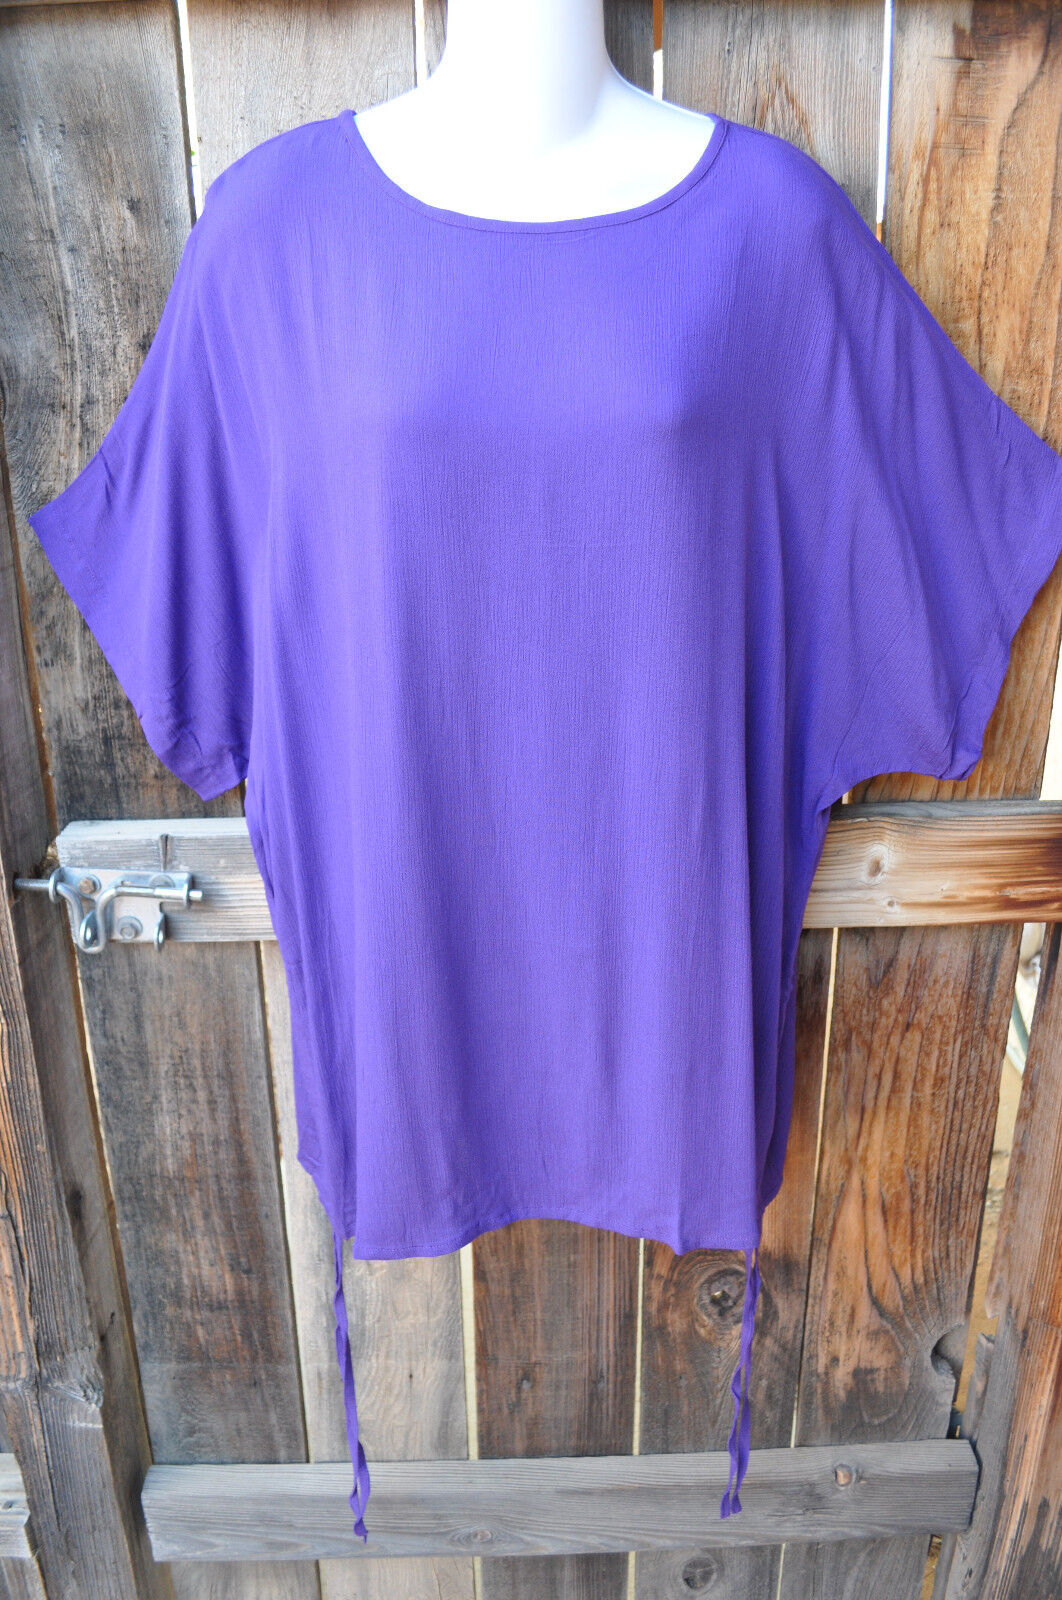 ART TO WEAR MISSION CANYON BL15 TIE TUNIC IN ALL NEW SOLID PLUM, OS+,50 B